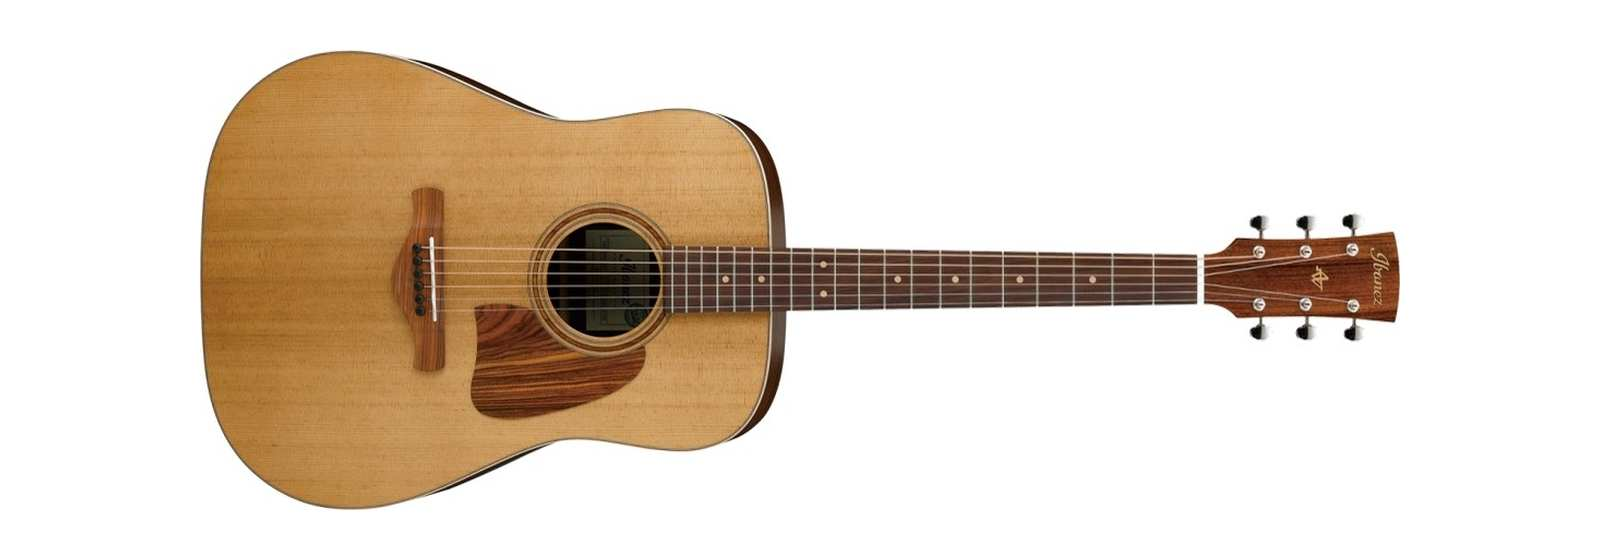 Ibanez AVD15PFR-OPS Dreadnought